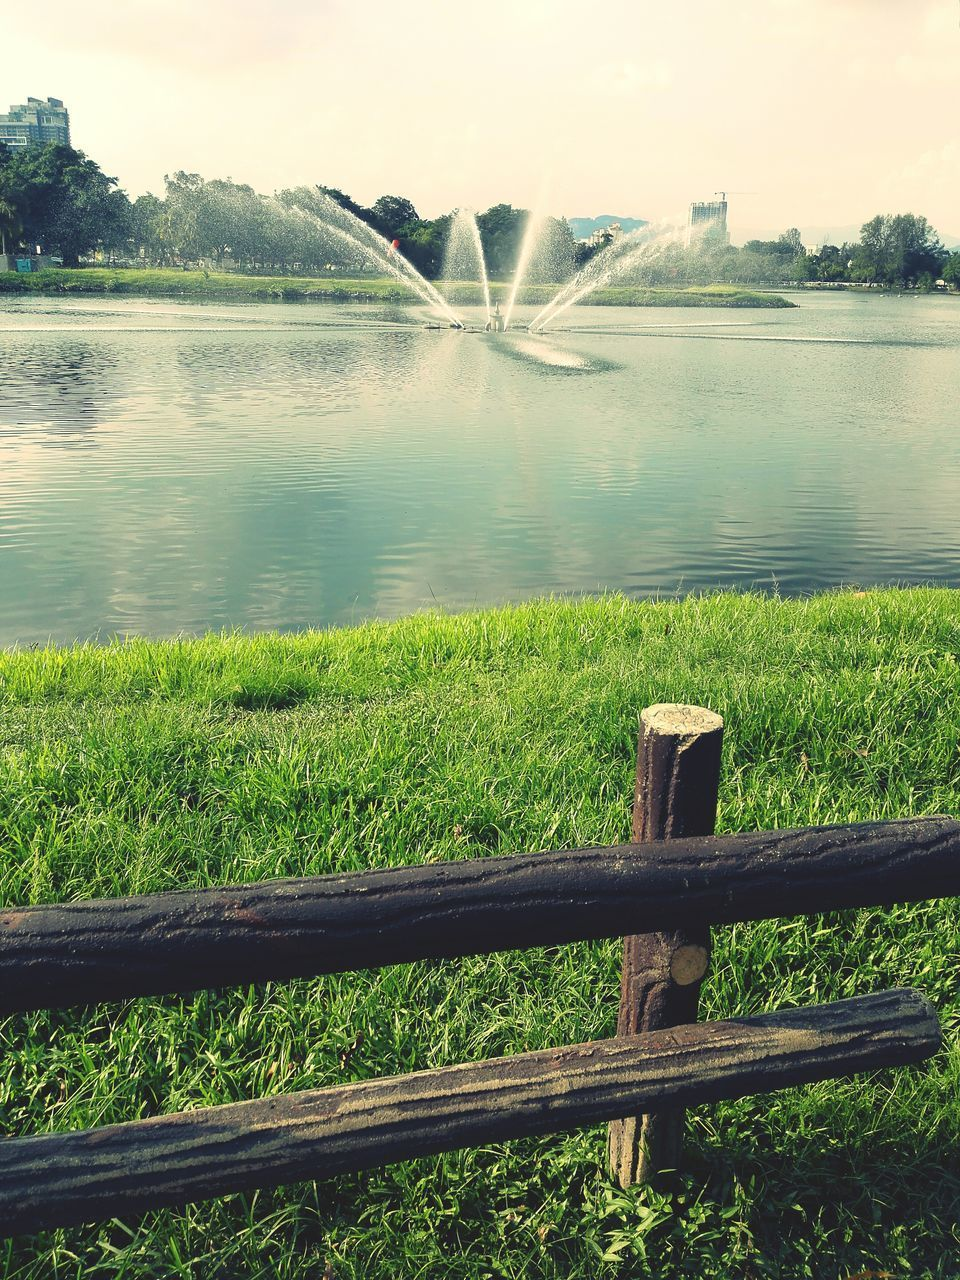 water, nature, outdoors, spraying, grass, beauty in nature, no people, green color, day, scenics, lake, motion, irrigation equipment, tree, sky